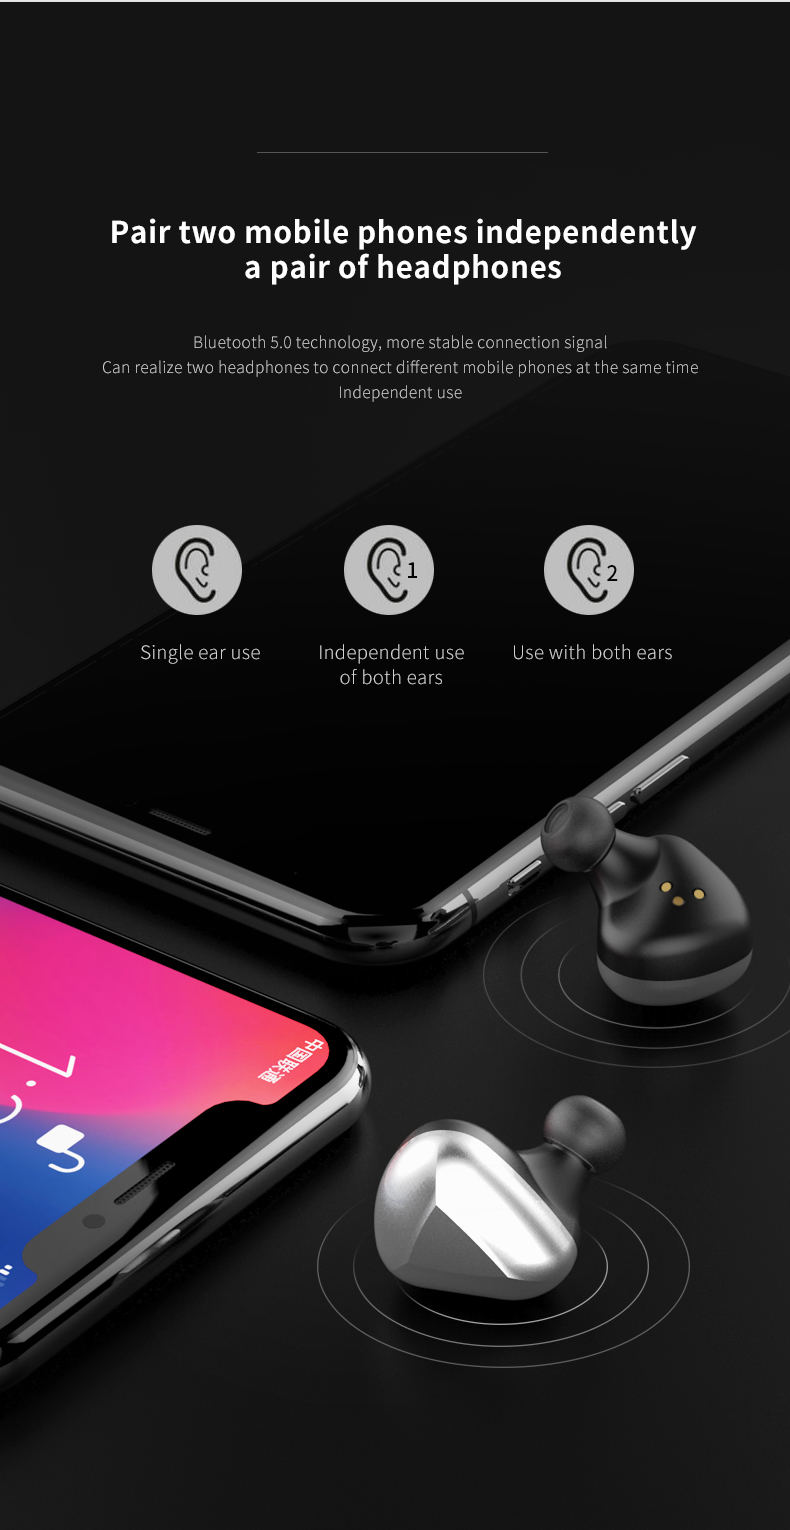 Leabuds wireless Bluetooth TWS earbuds - Pair two mobile phones independently - a pair of headphones.